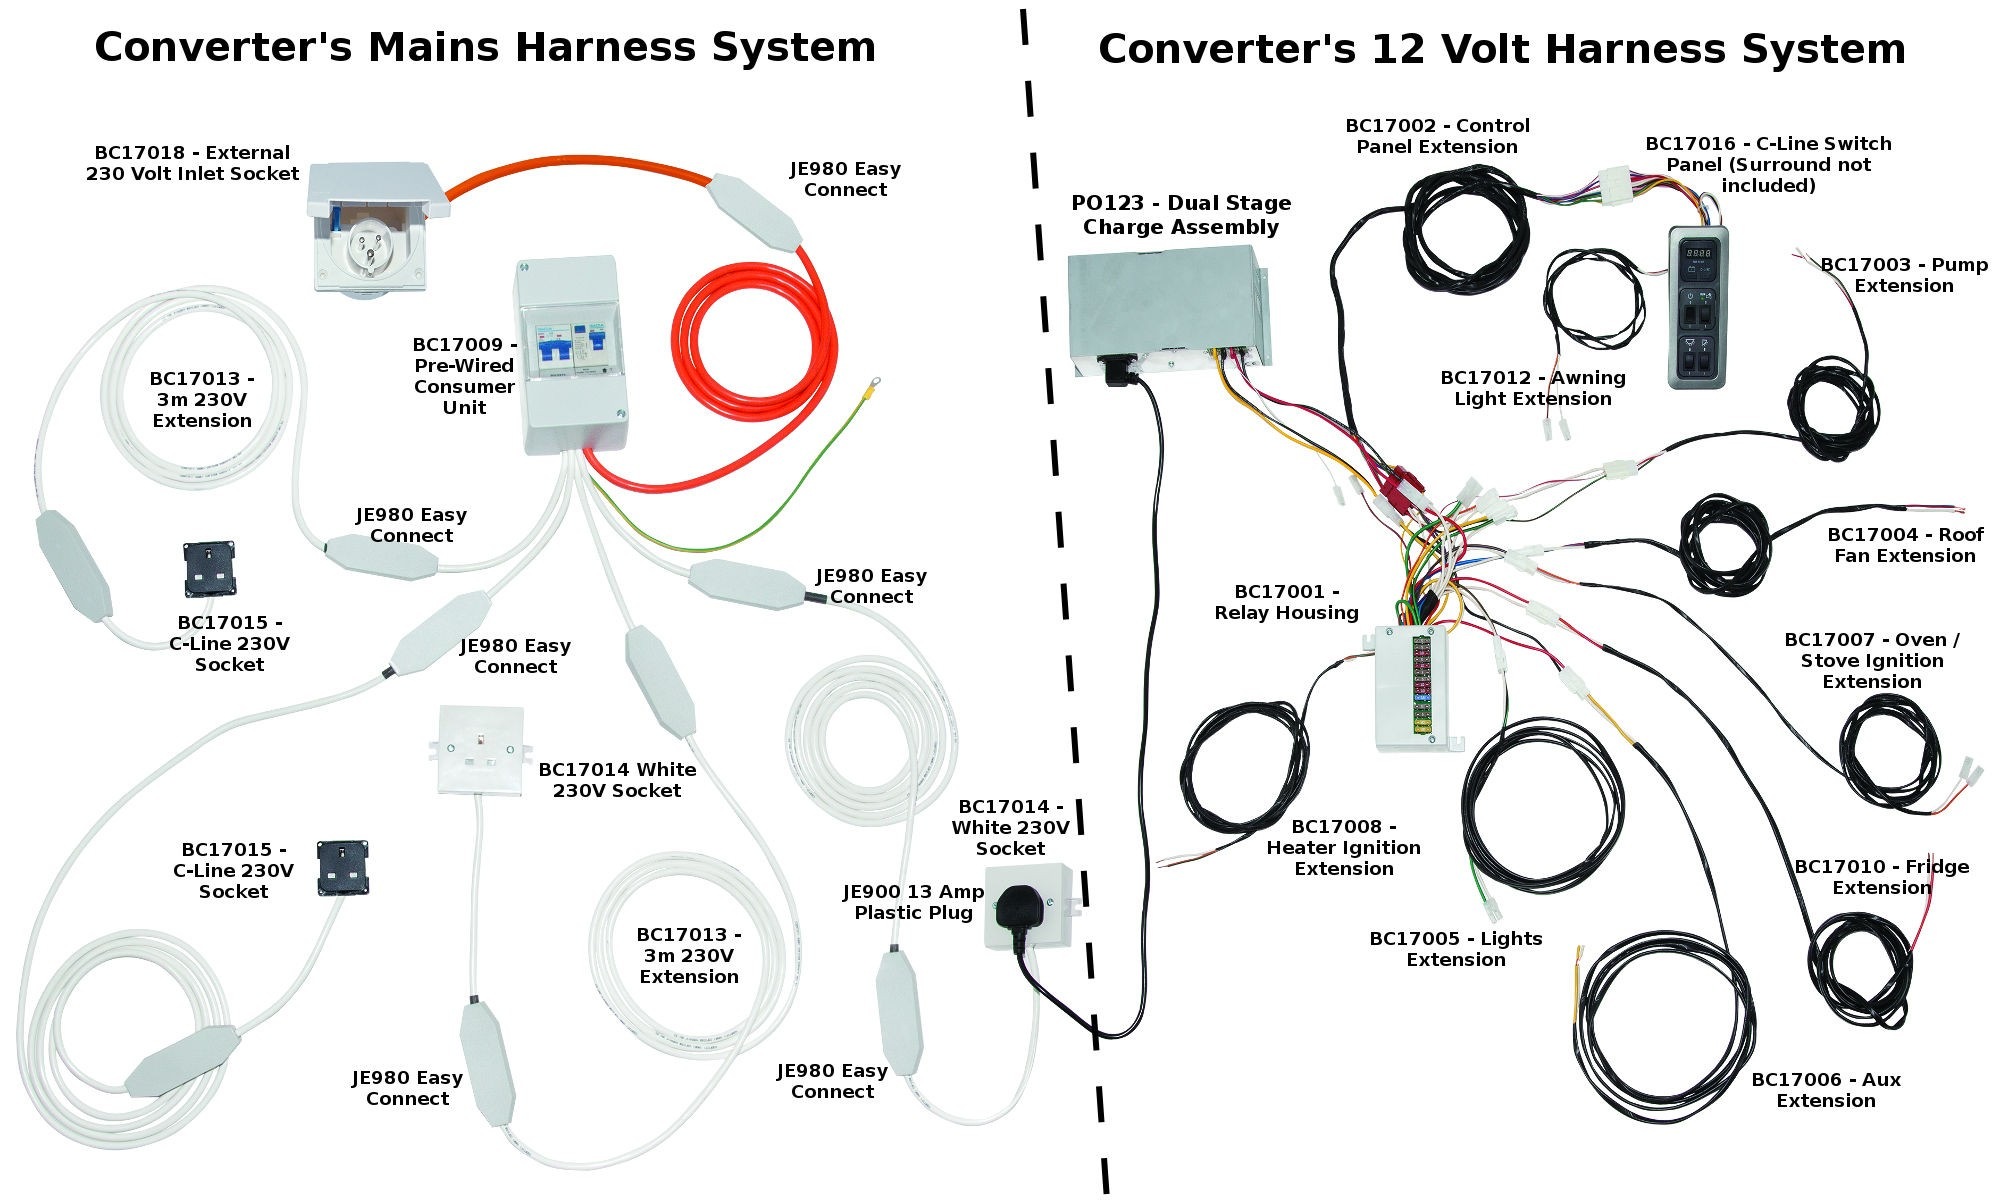 caravan consumer unit wiring diagram power steering rack and pinion van converters system 12v 240 volt all the major components of electrical are pre wired with plug play connectors making it far simpler to build install